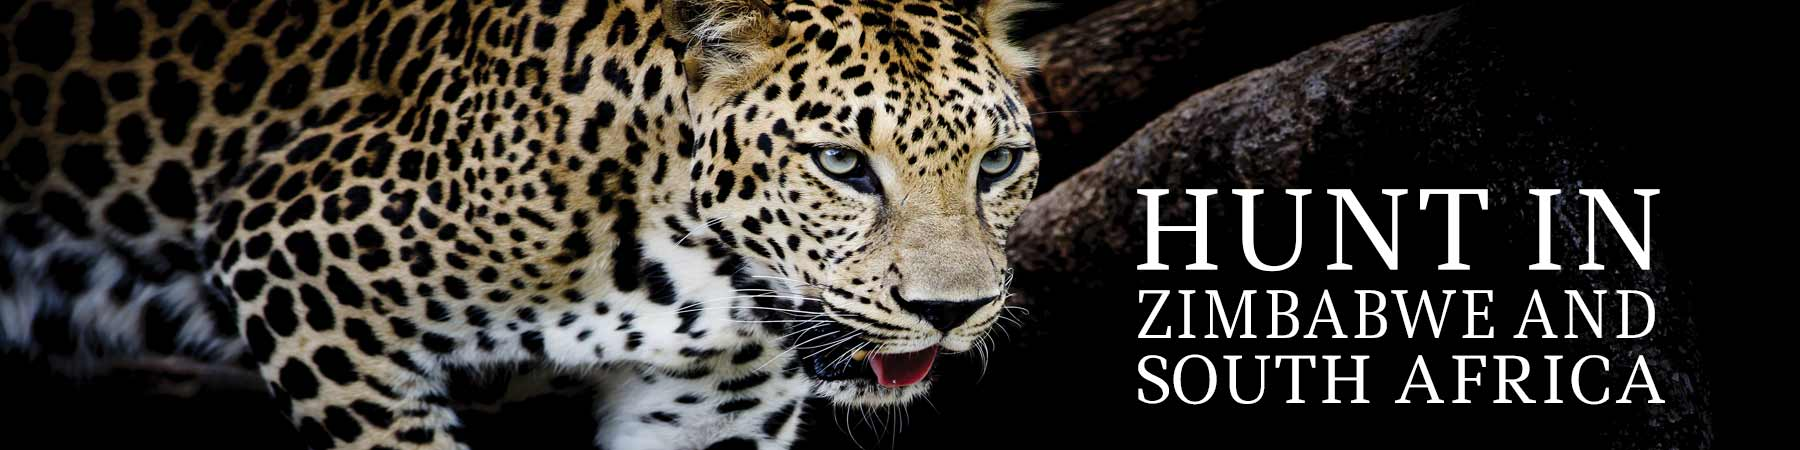 Website-Banner-Leopard-1